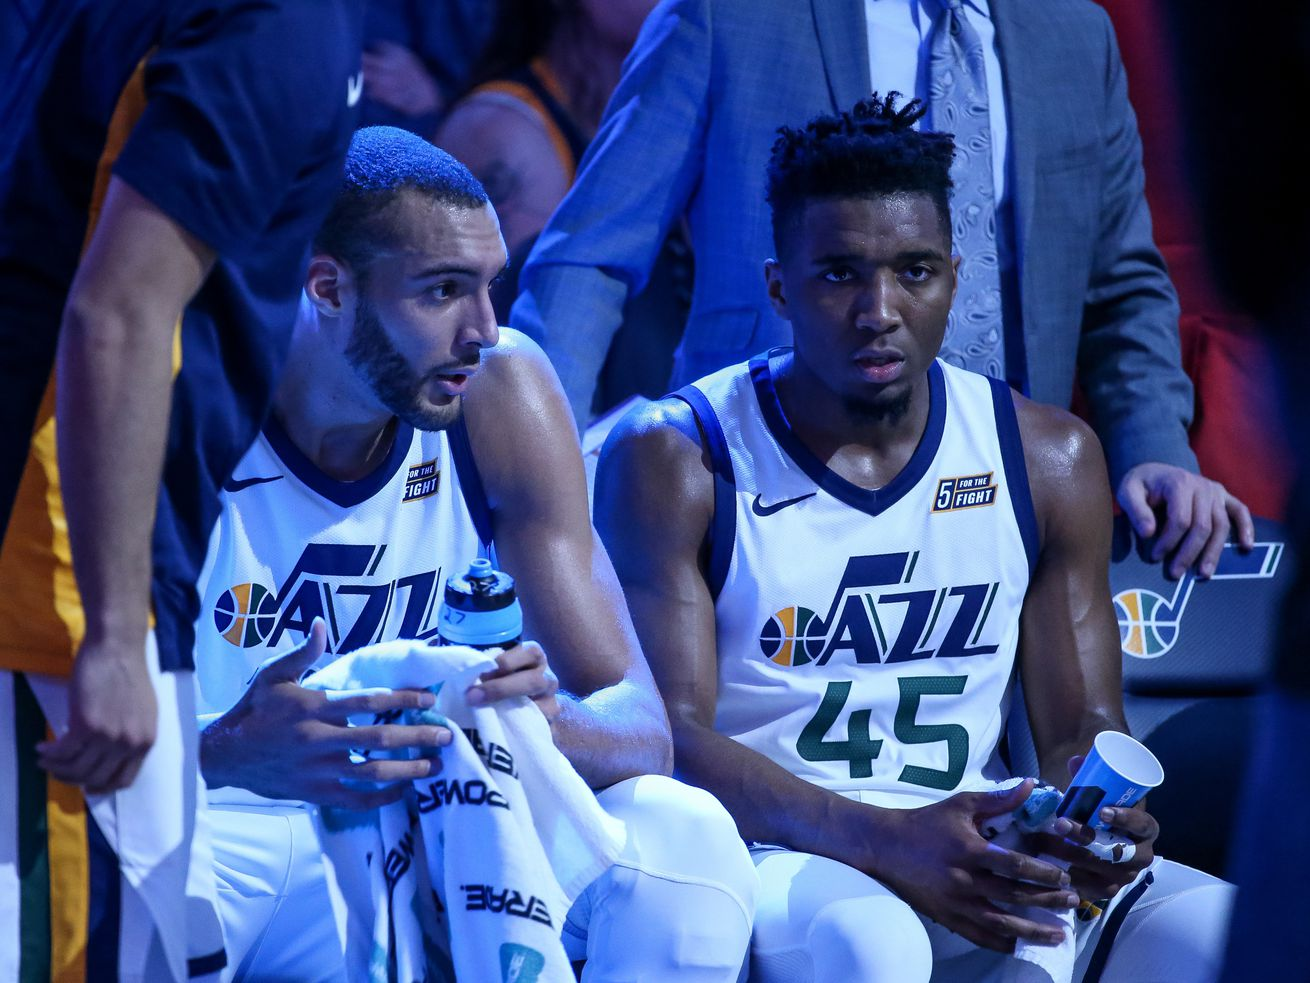 How to watch Donovan Mitchell and Rudy Gobert in the NBA All-Star Game